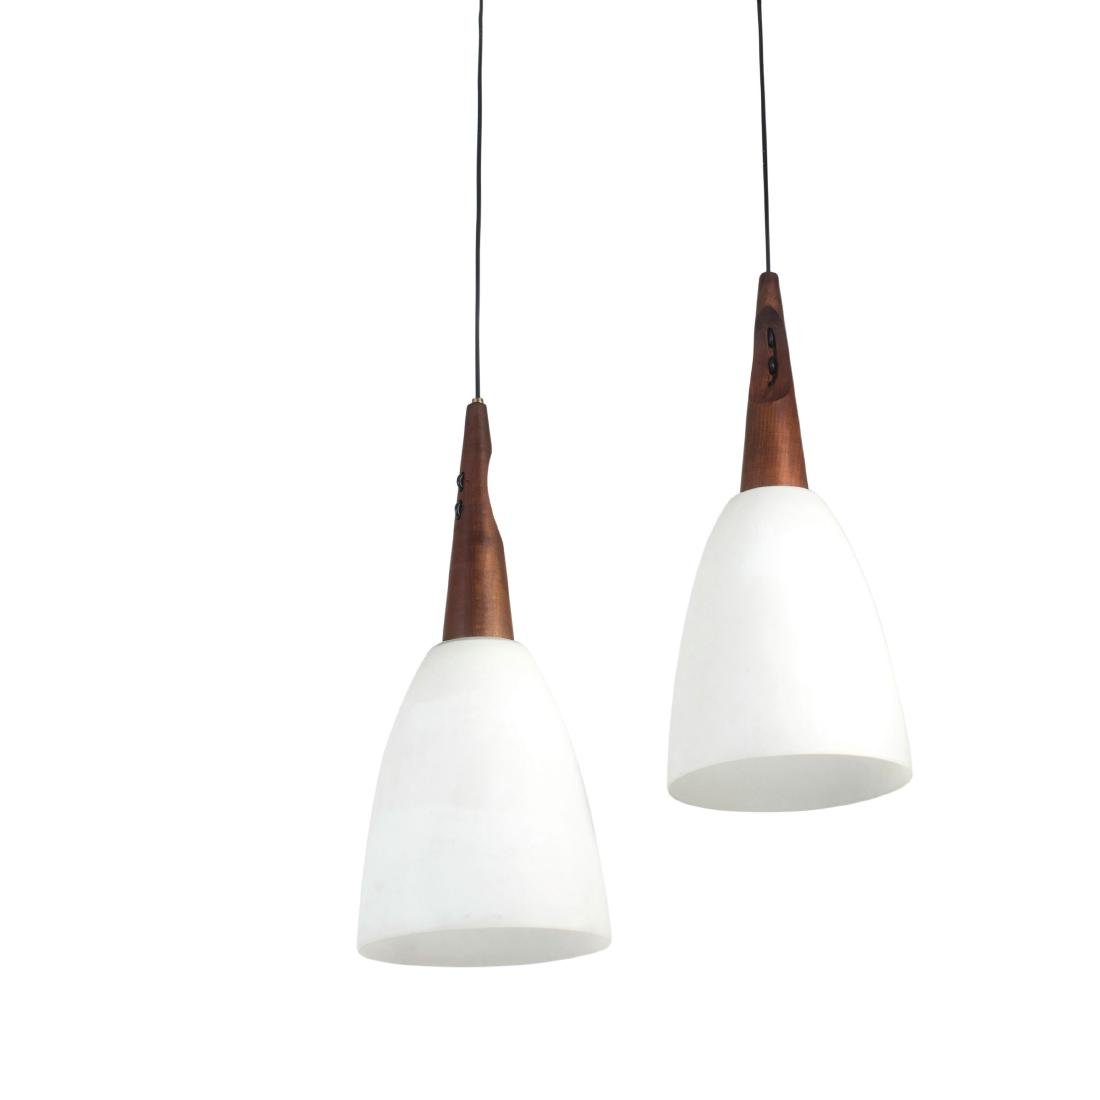 Two ceiling lights, c. 1958